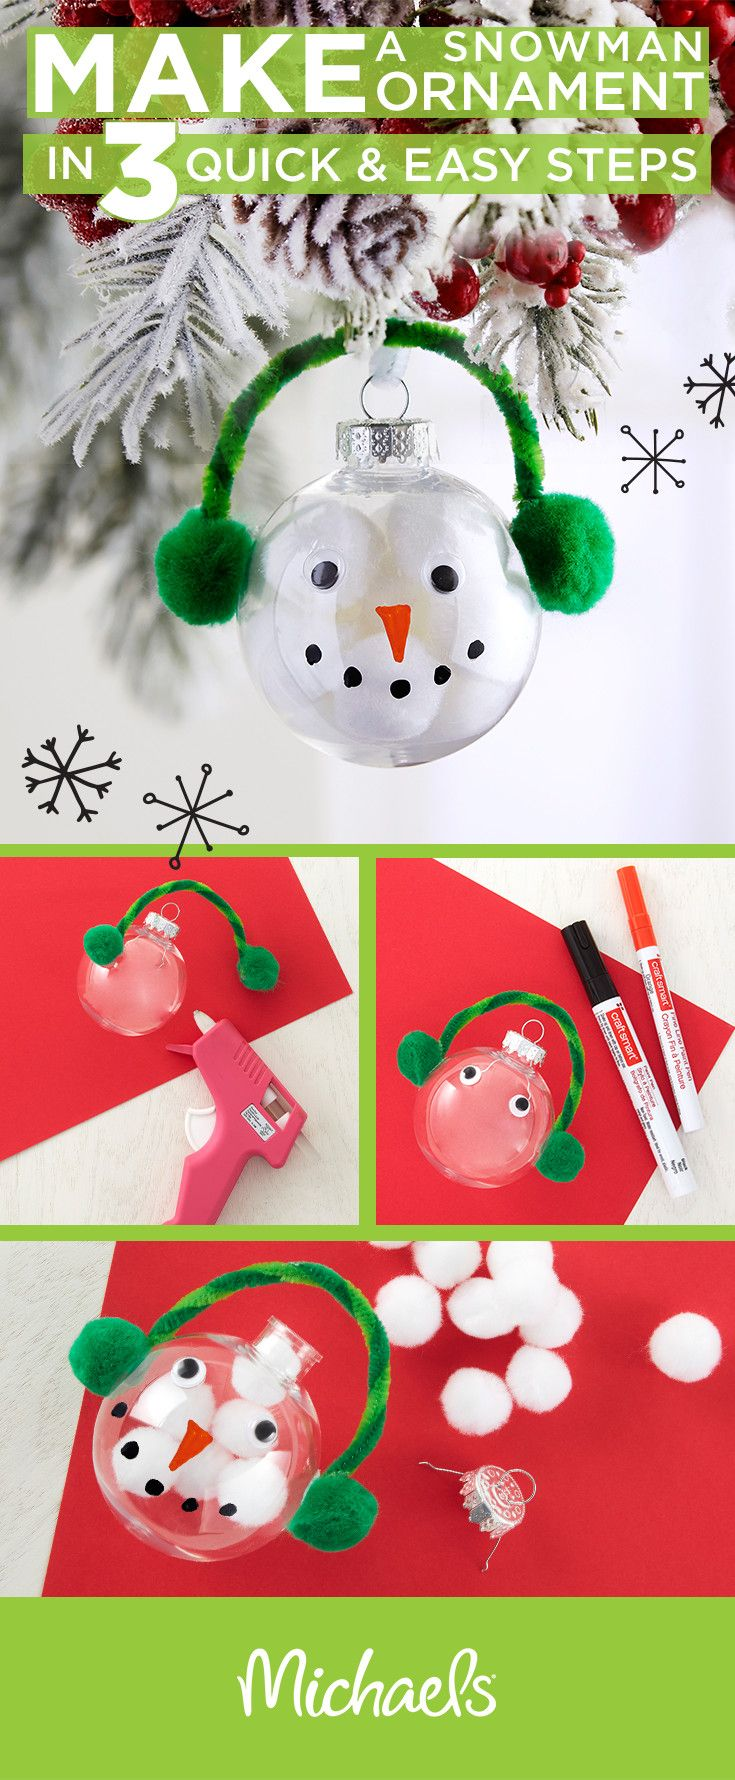 Make a whimsical snowman ornament in 3 quick & easy steps! First, hot glue pom poms and a chenille stem to the clear ornament to make earmuffs.Next, add wiggle eyes and draw on your snowman's face. Finish your ornament by filling it with white pom poms. Get all of the supplies you need to make your holiday ornaments at your local Michaels store.